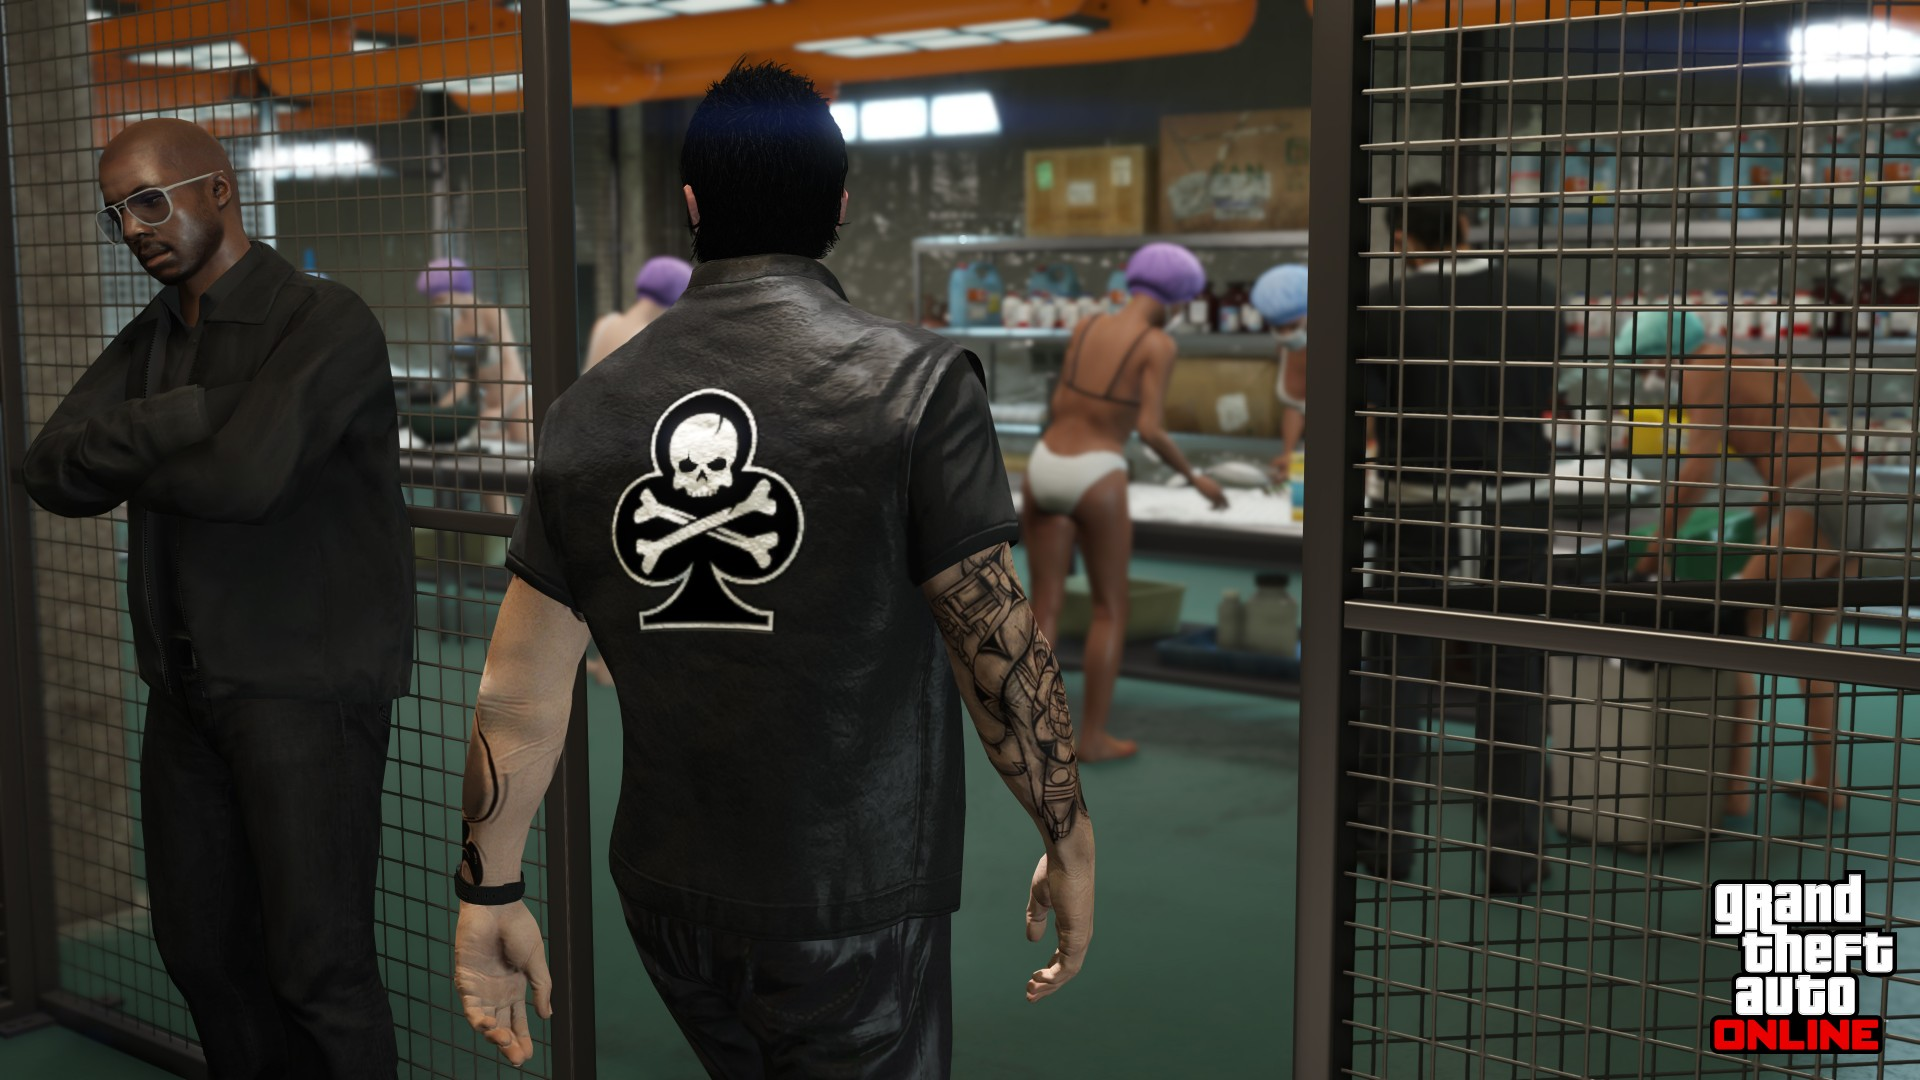 GTAOnline 13602 Bikers MCBusiness CocaineLockup 1400 1080